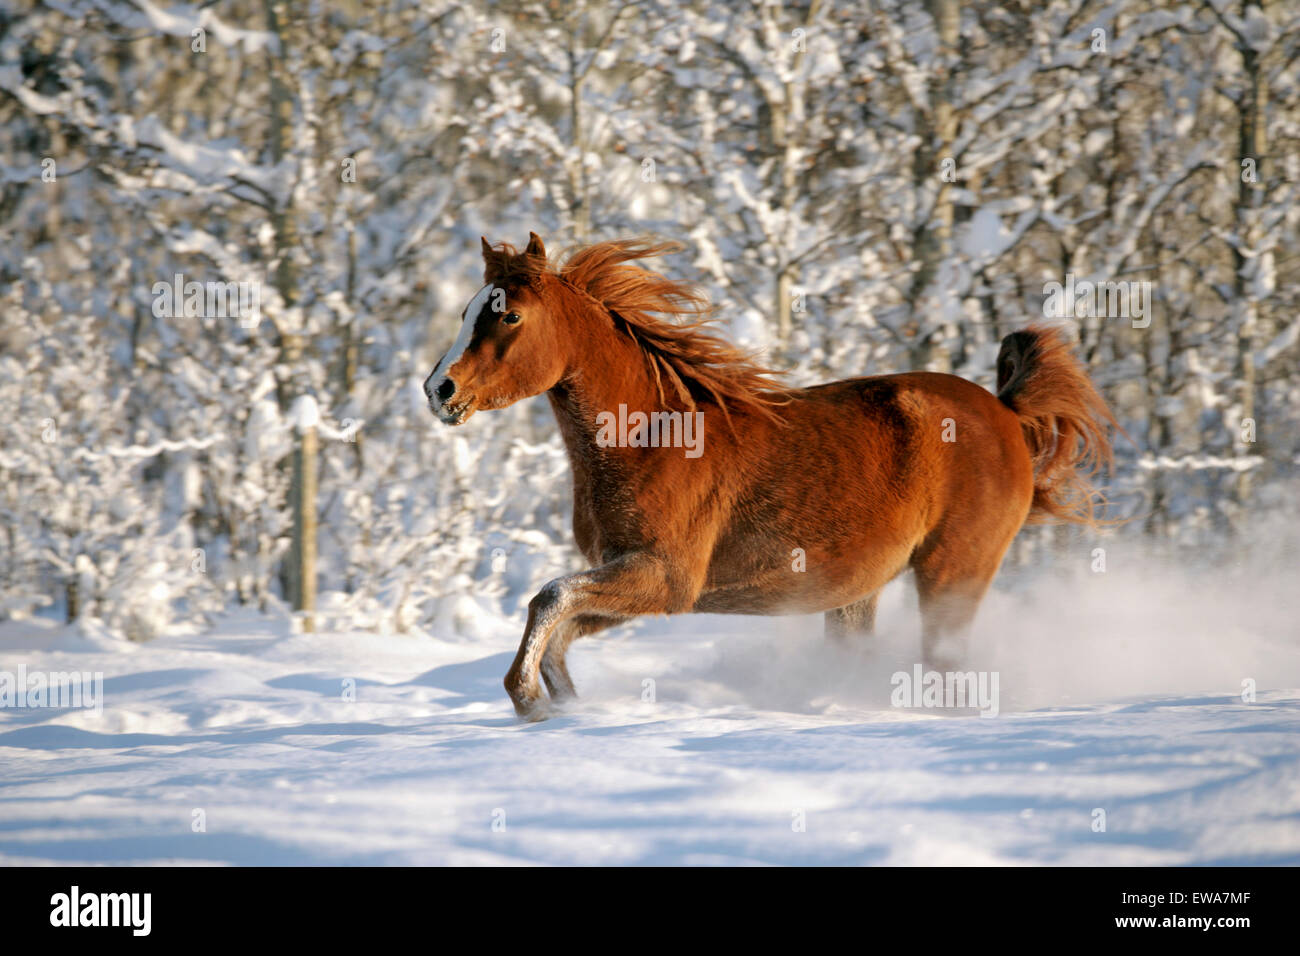 Purebred Chestnut Arabian Mare running through fresh snow Stock Photo